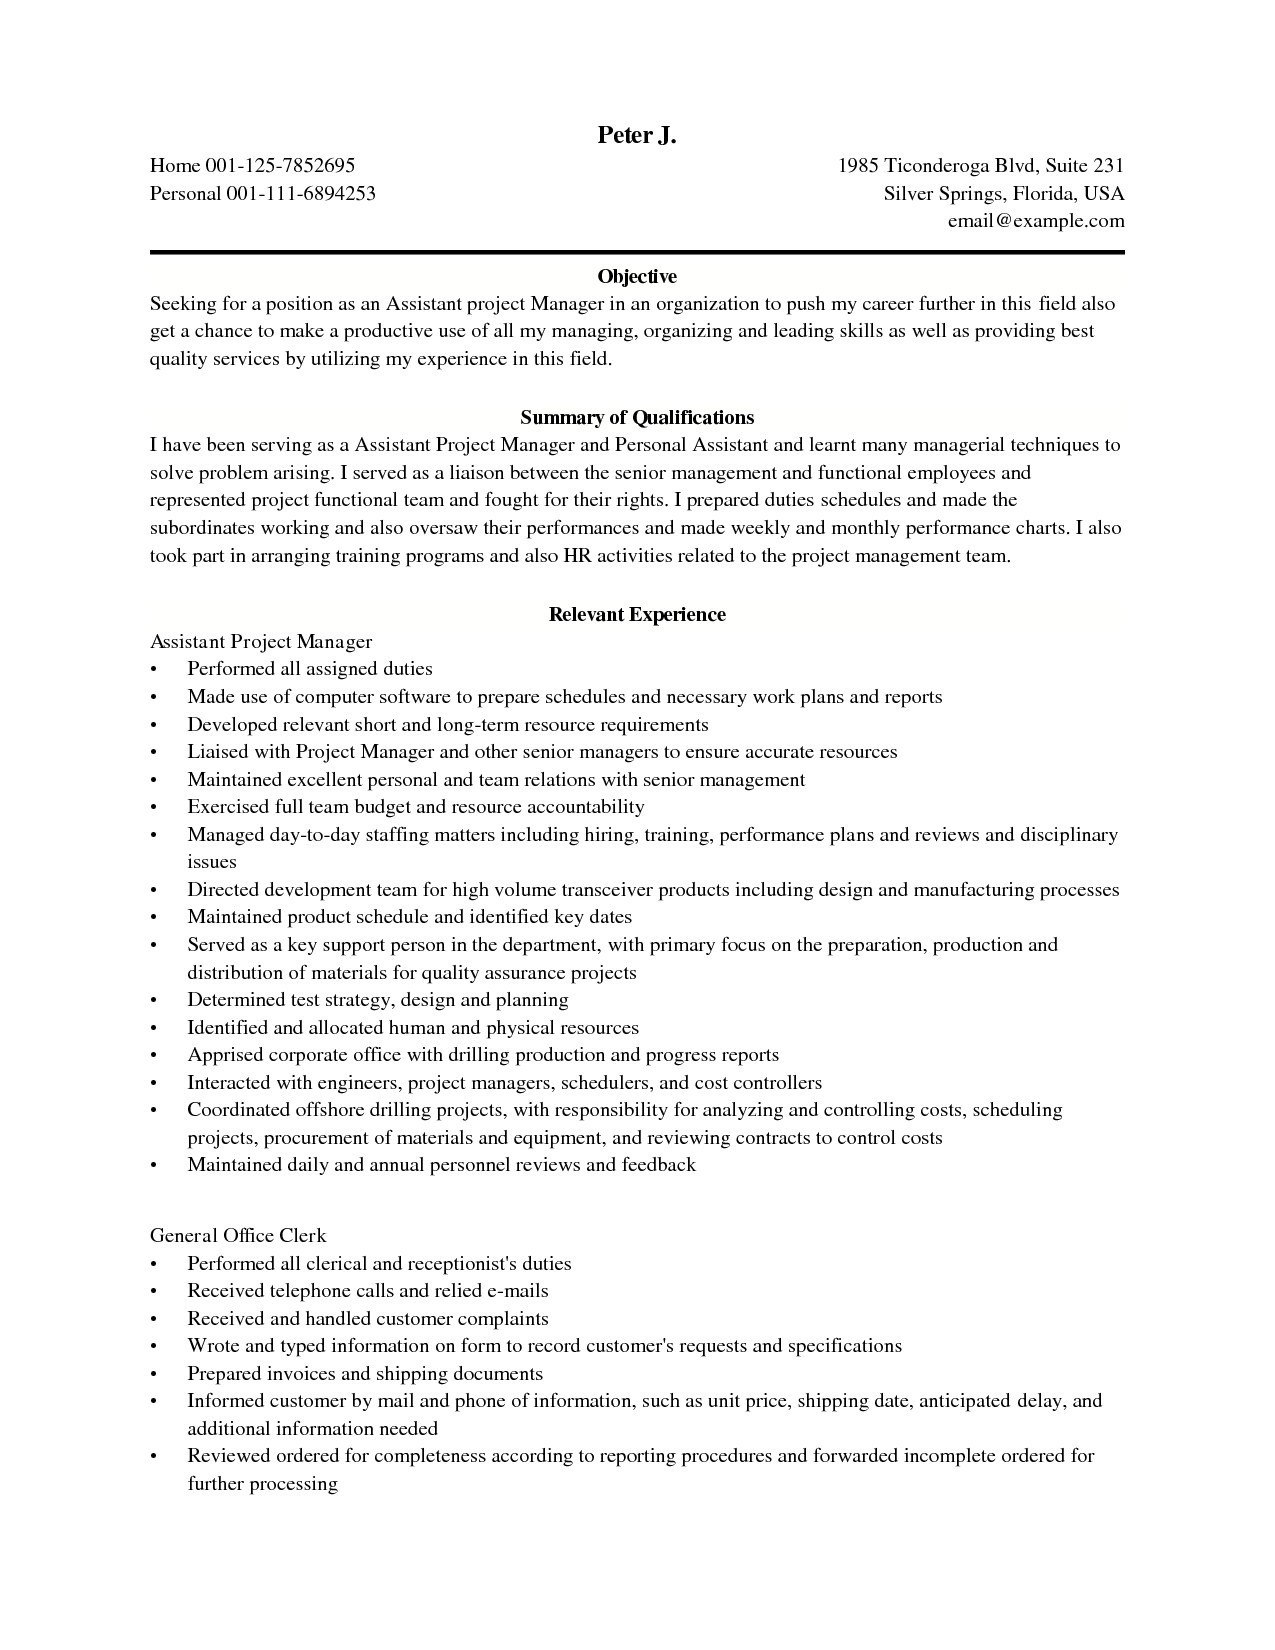 Construction Manager Resume - Project Manager Sample Resume New Awesome Elegant Grapher Resume